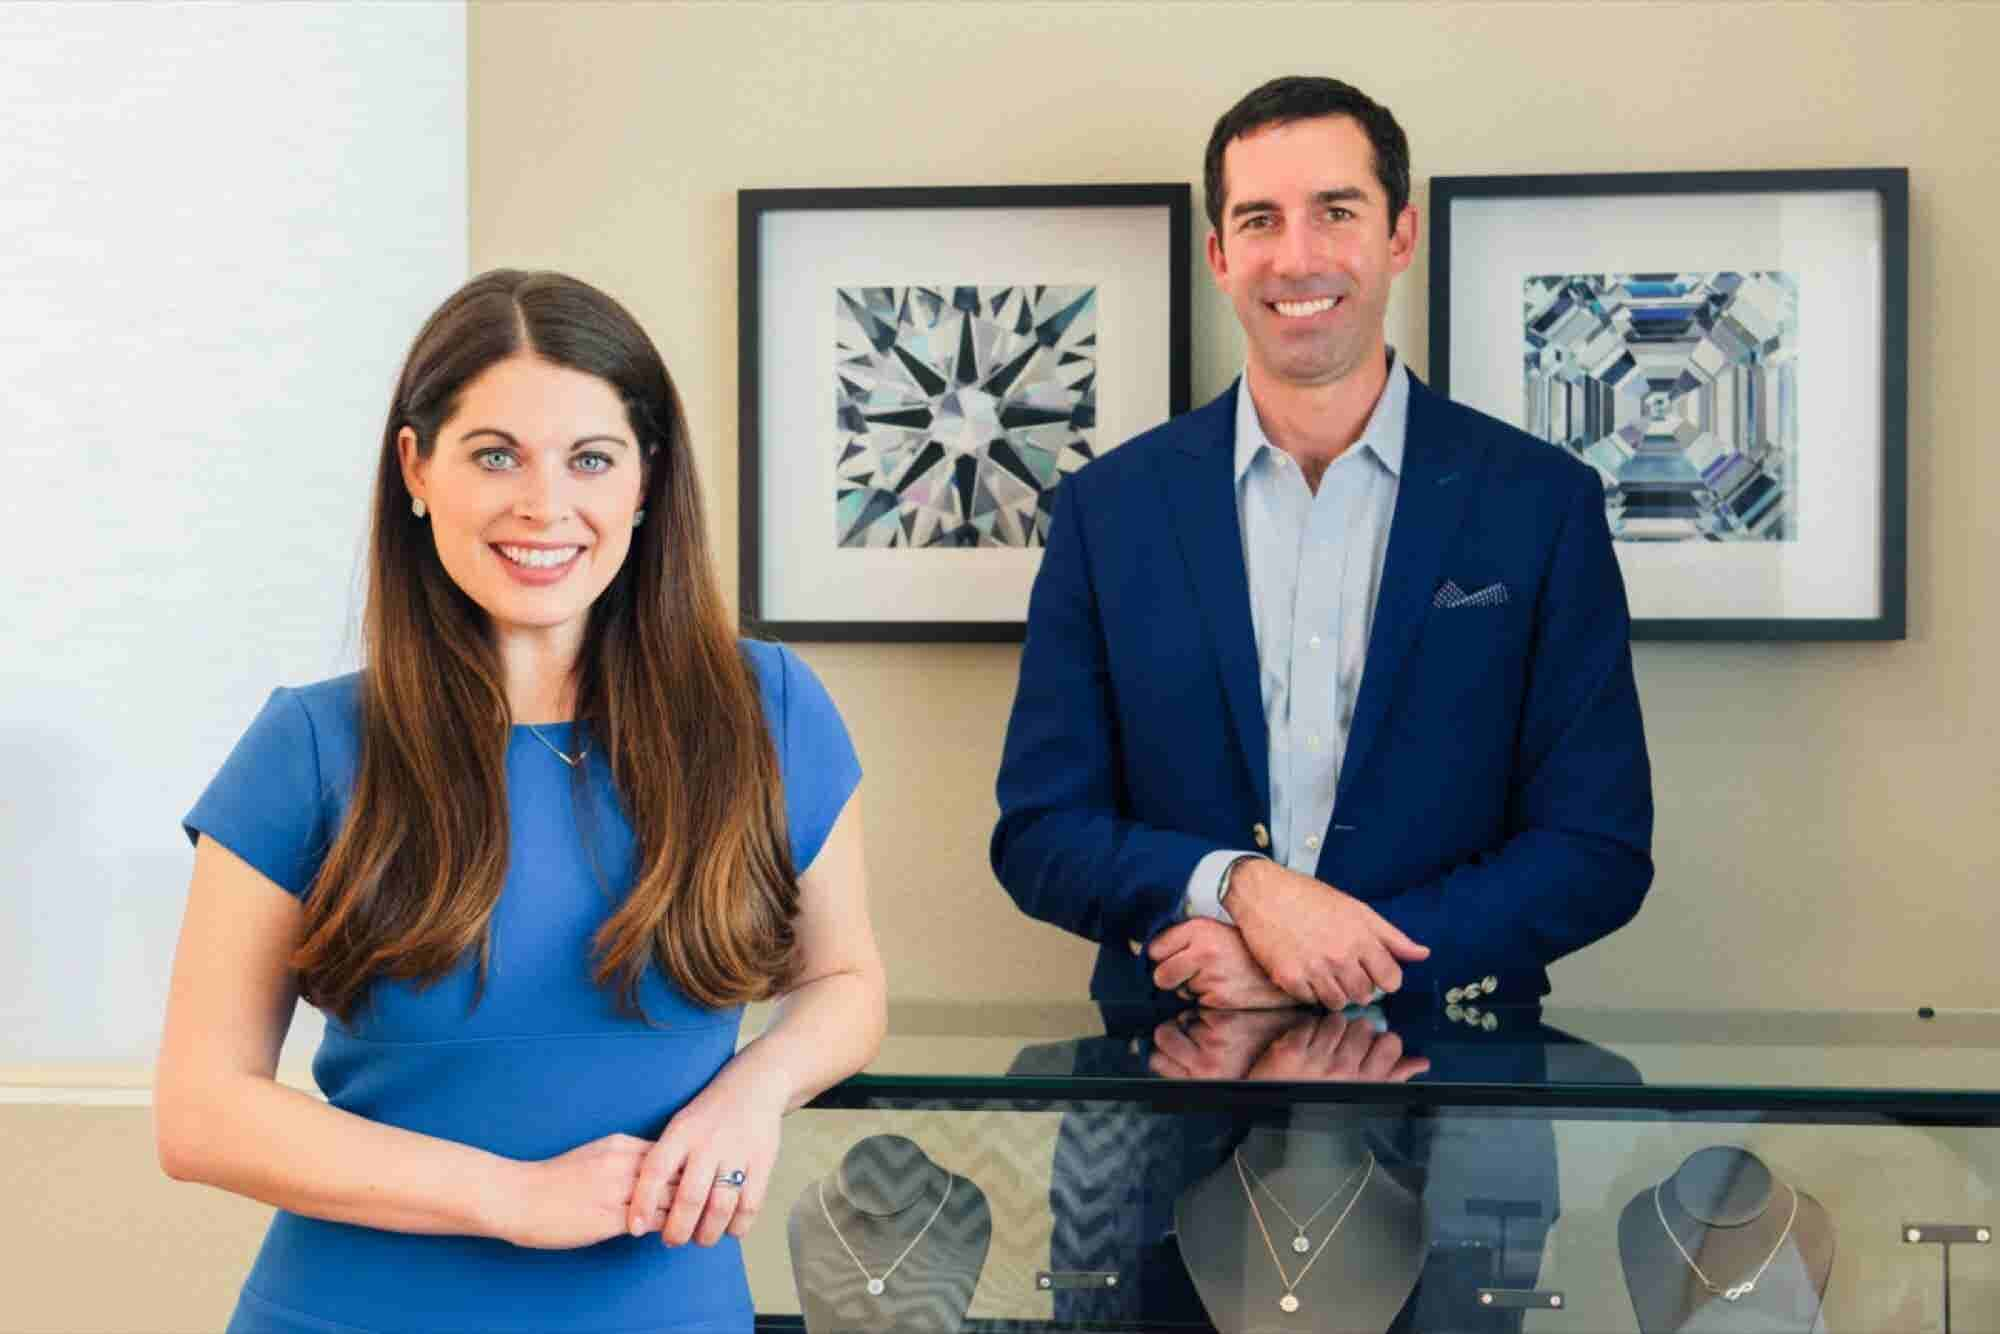 For This Entrepreneur Couple, Some Days Are Diamonds and Some Days Are Rocks